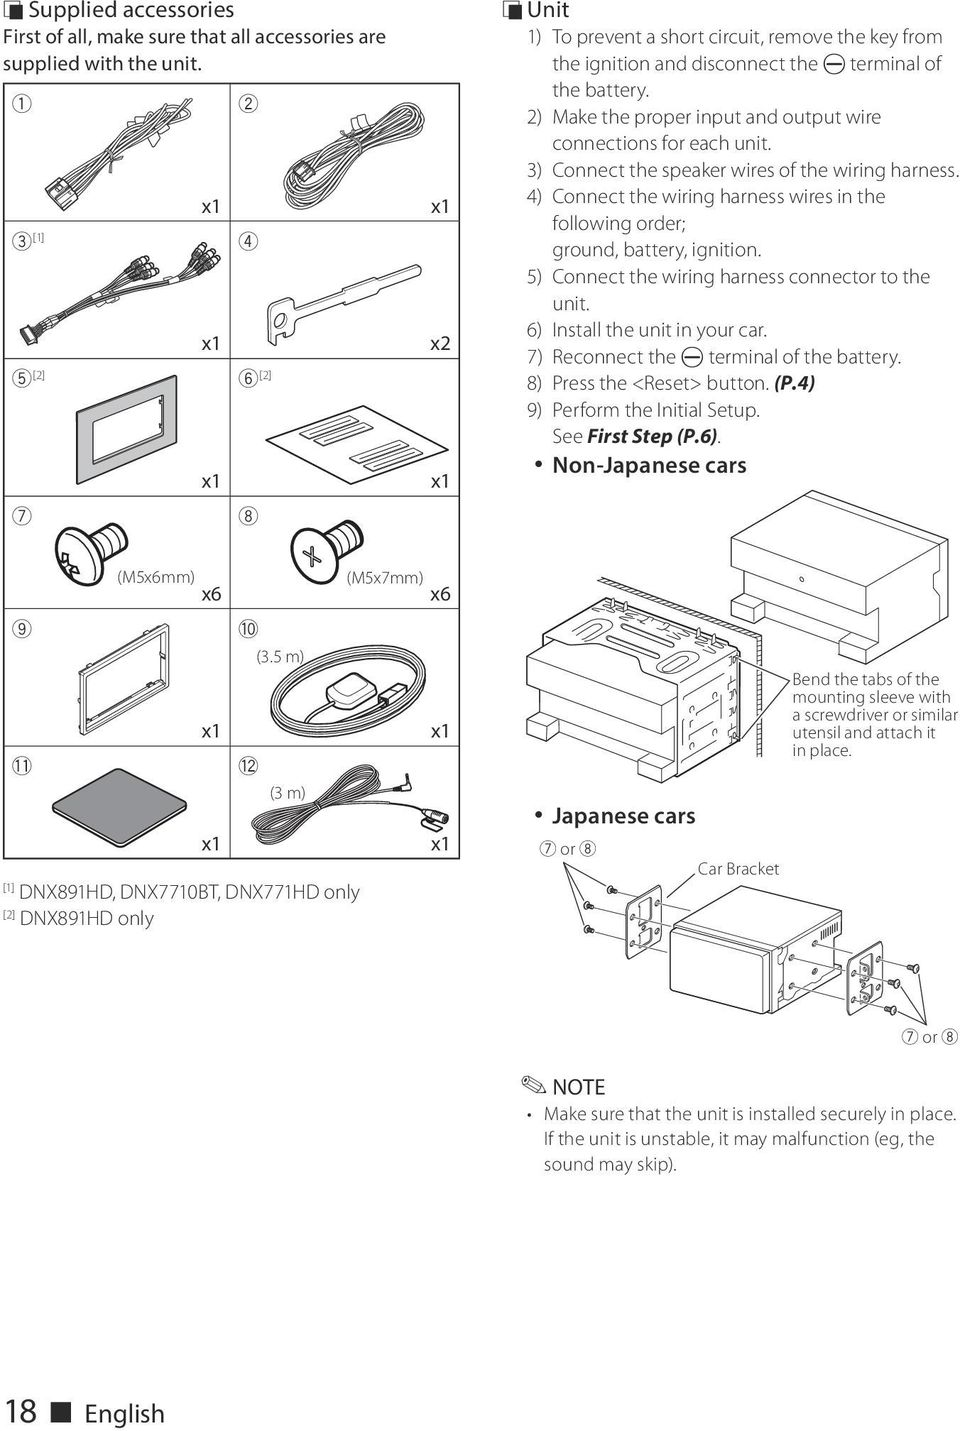 Dnx891hd Dnx7710bt Dnx771hd Dnx691hd Dnx571hd Dnx571ex Dnx5710bt Pdf Japan Car Wiring Diagram 2 Make The Proper Input And Output Wire Connections For Each Unit 3